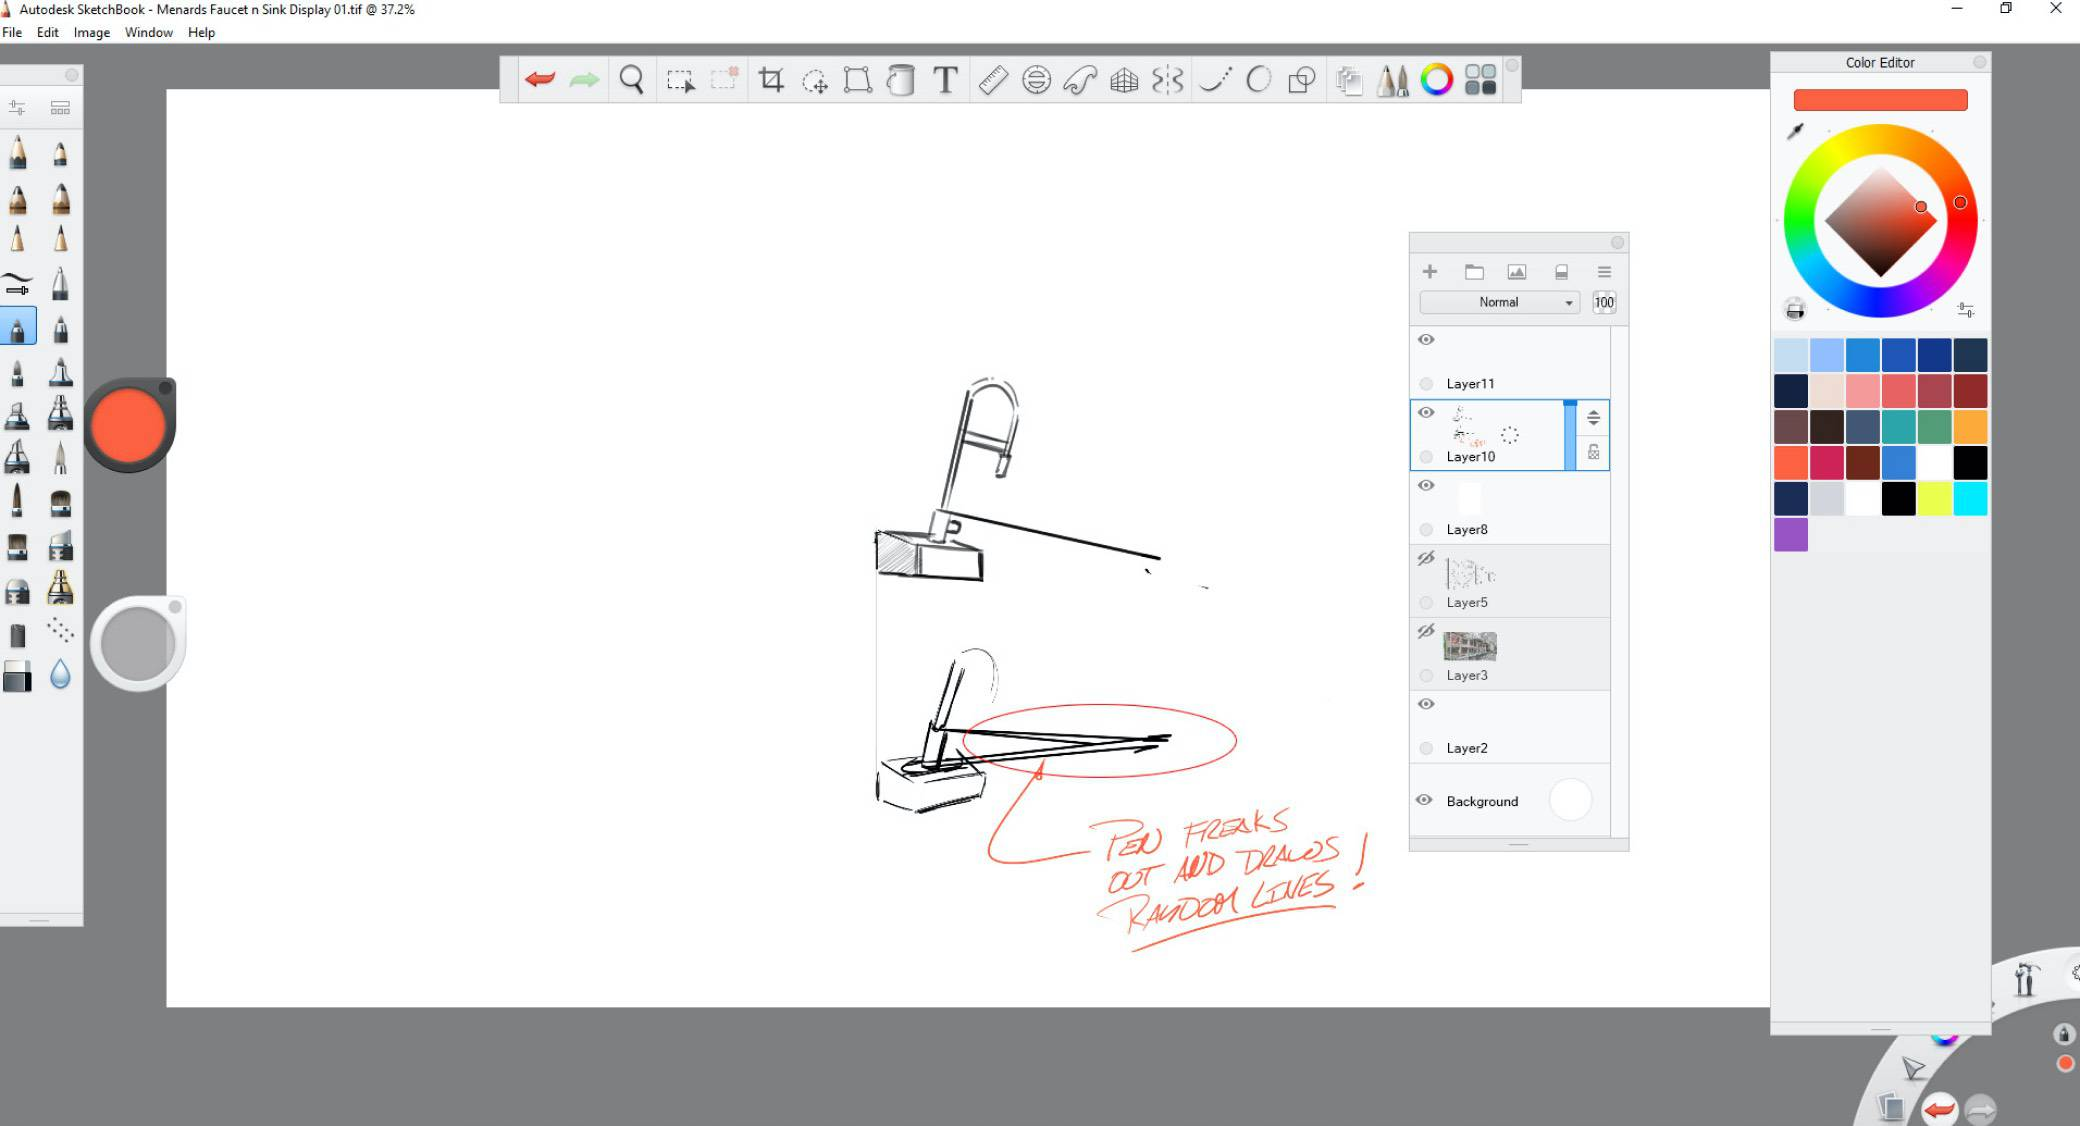 autodesk-sketchbook screenshot